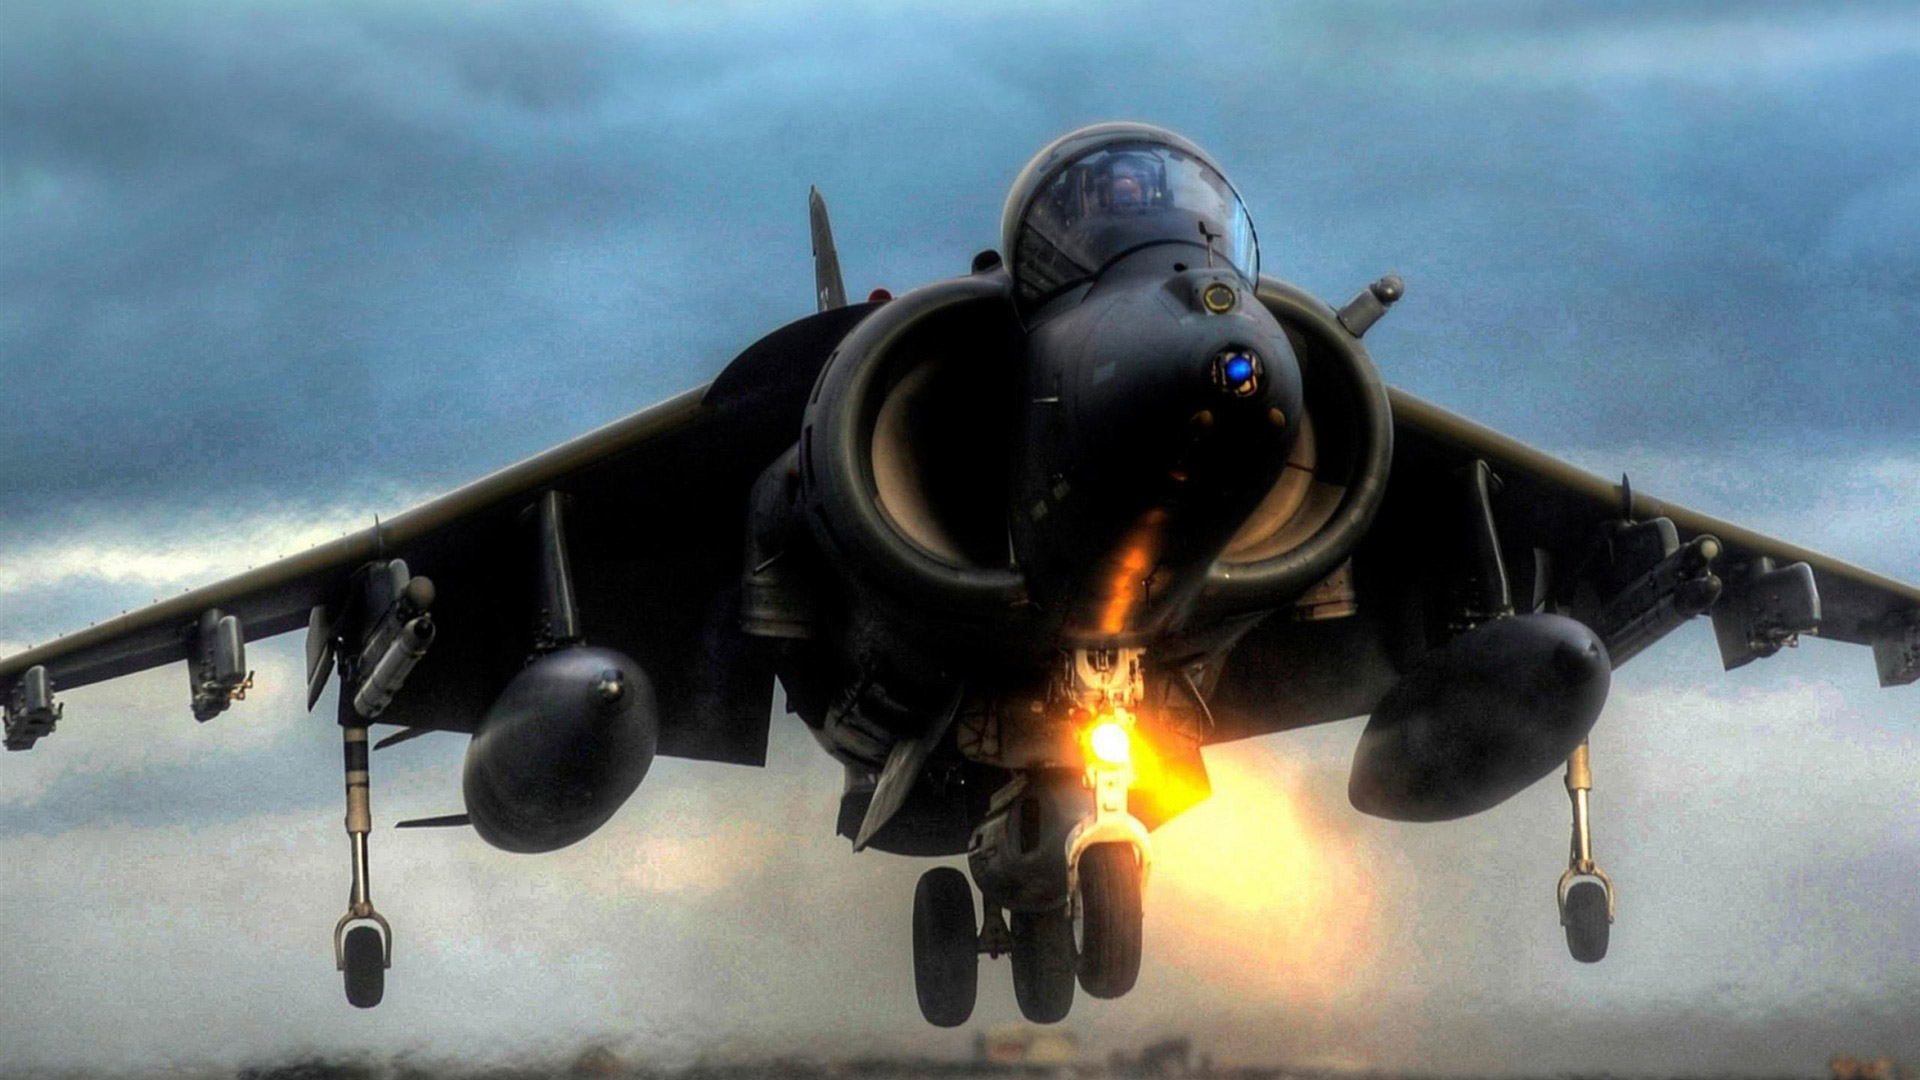 fighter aircraft hd wallpaper wallpapers55com   Best Wallpapers for 1920x1080